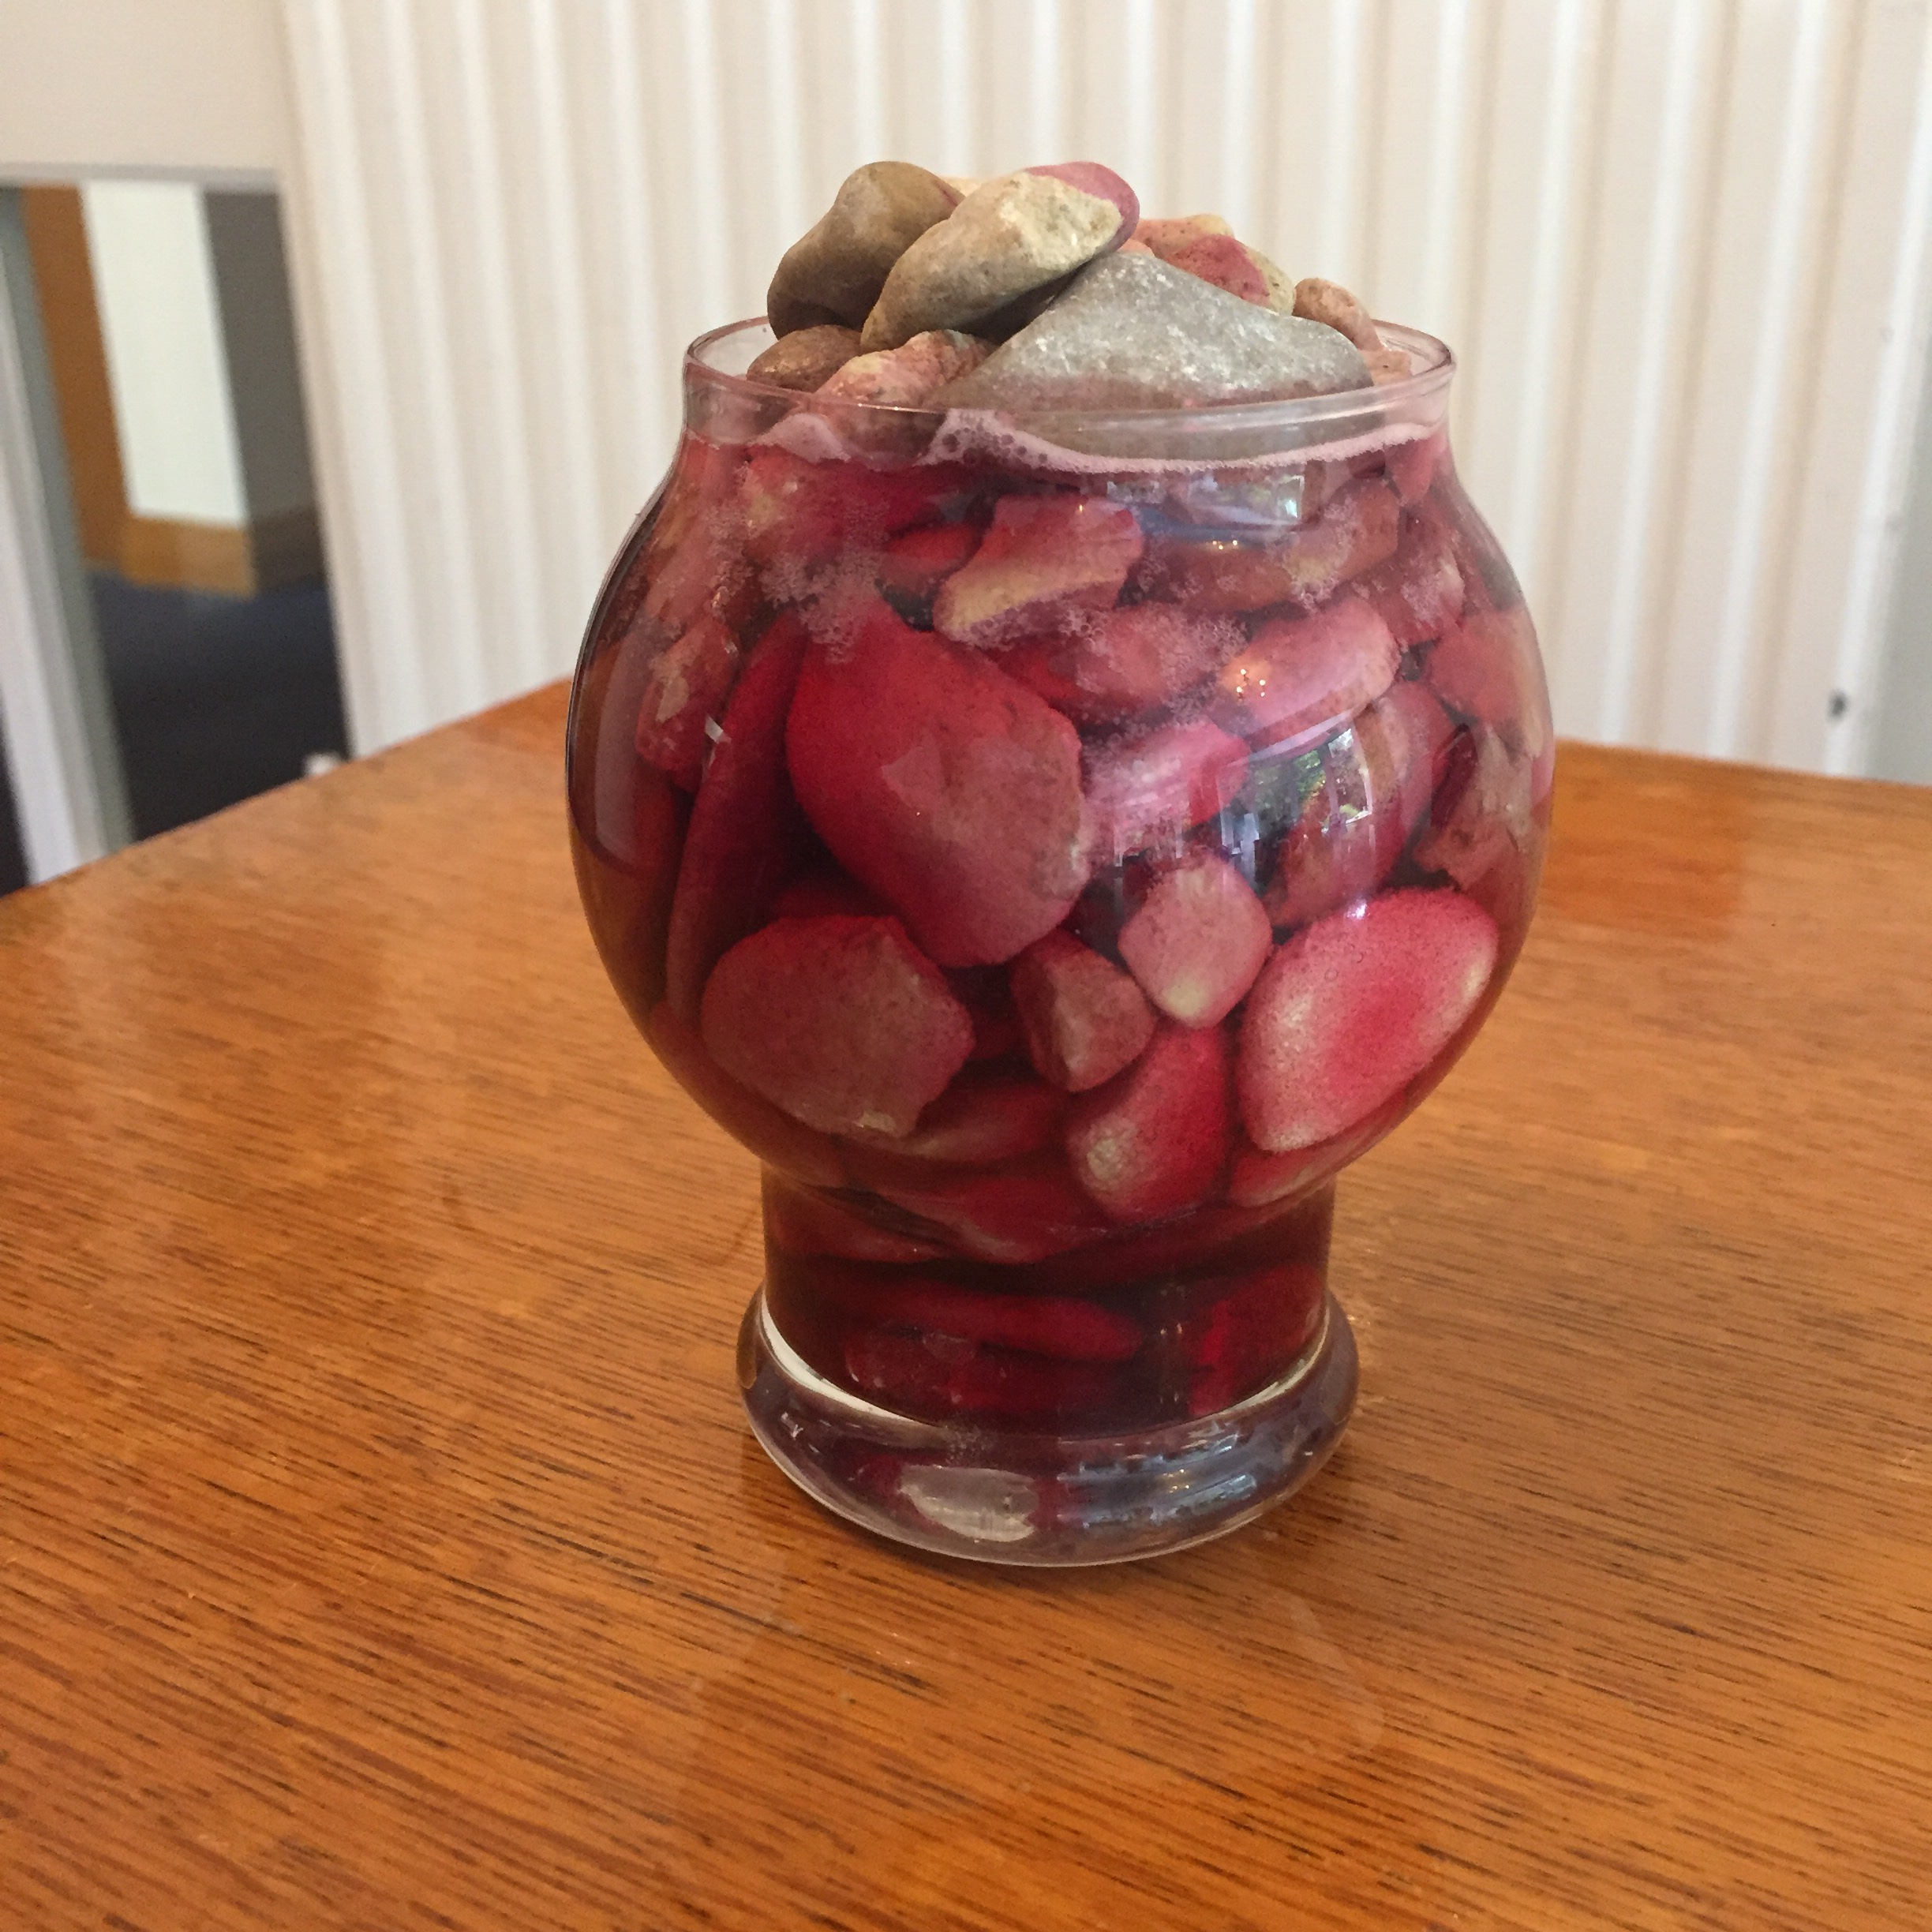 Stones in a vase filled with red liquid